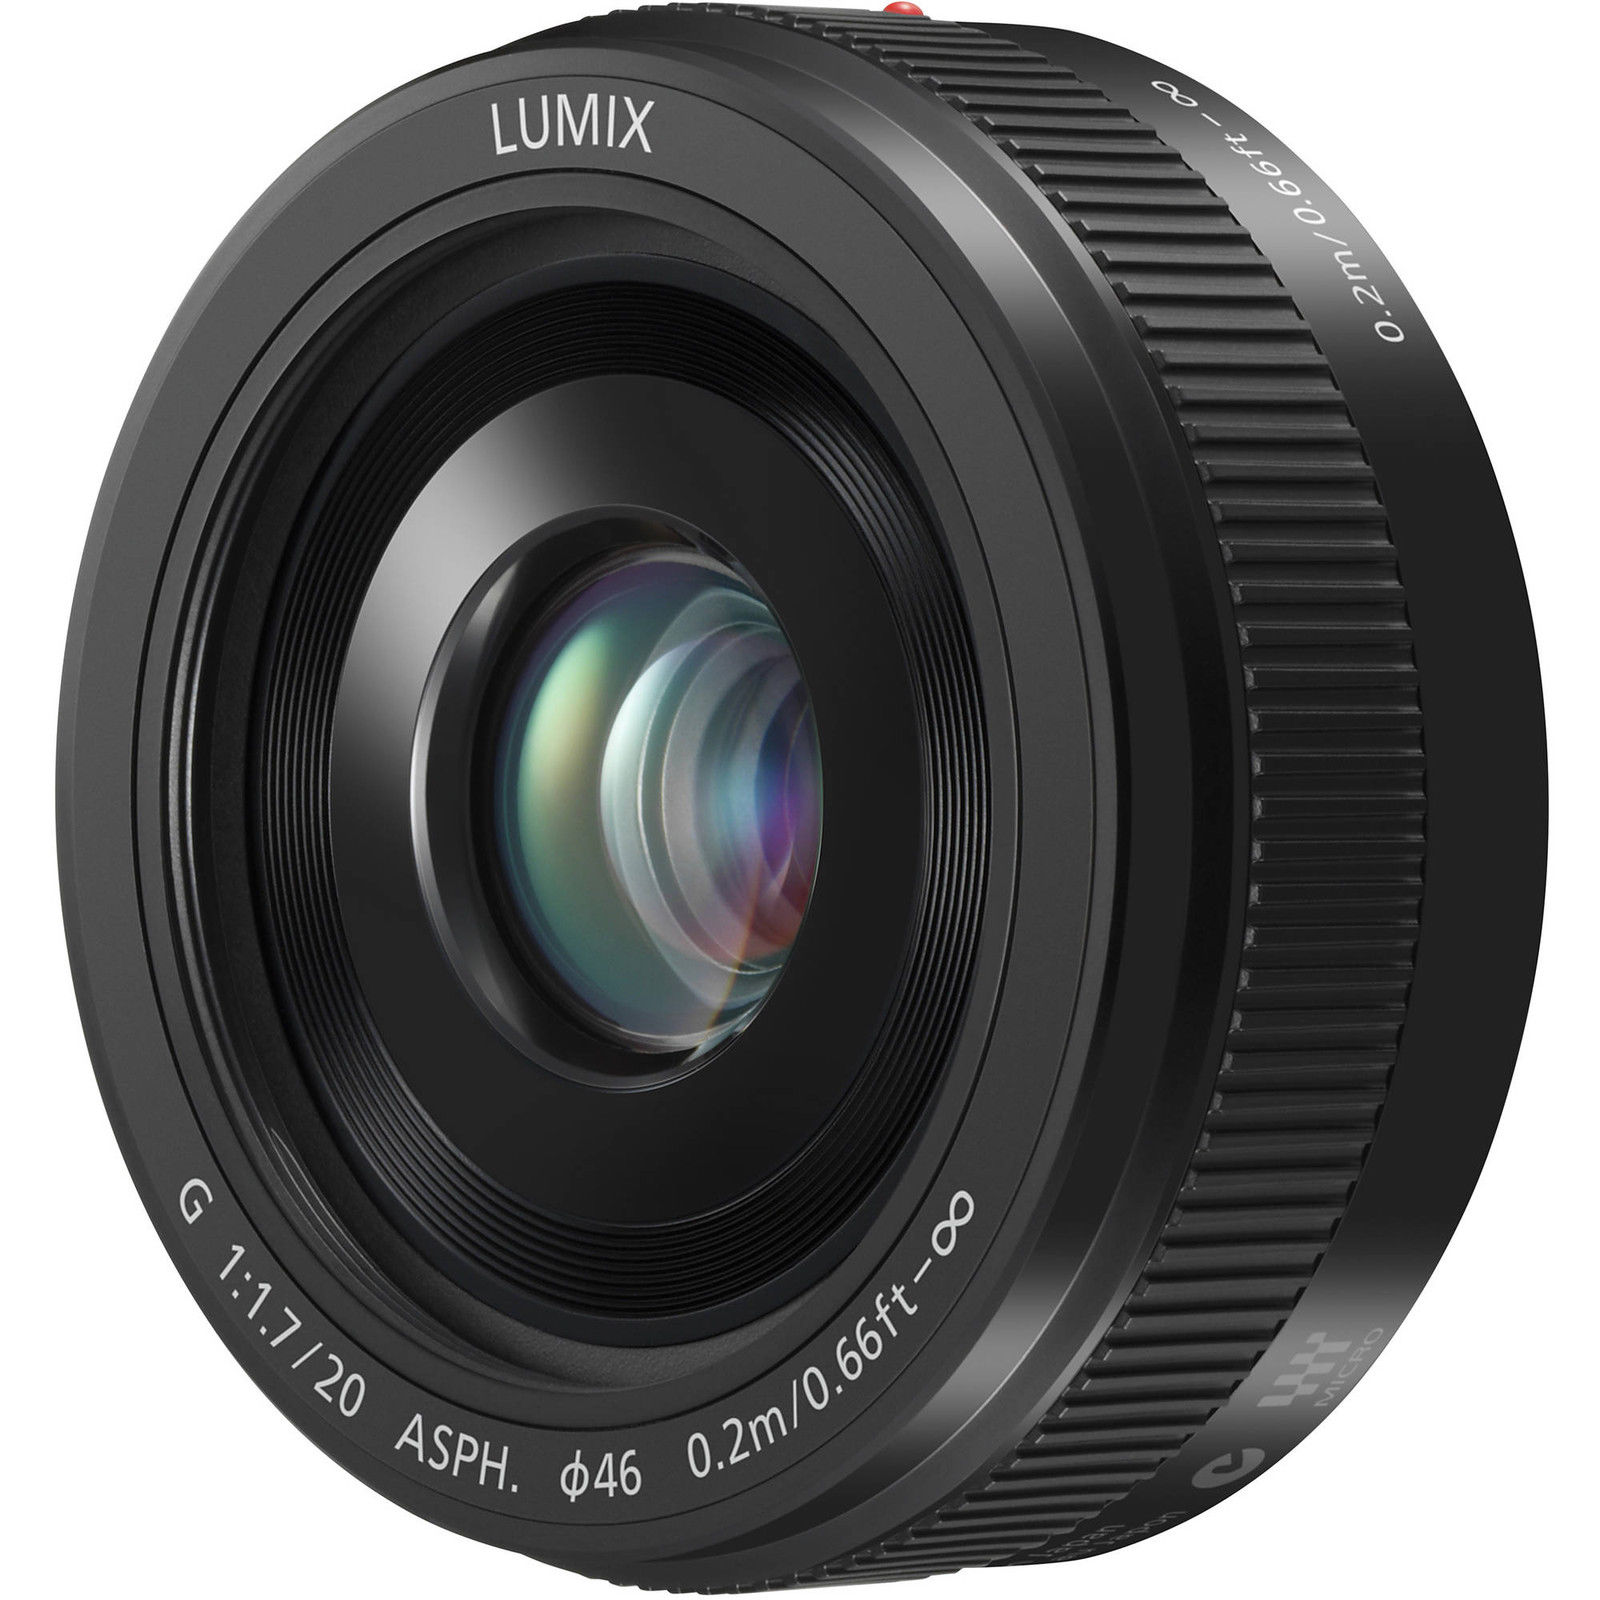 Panasonic Lumix G 20mm f/1,7 II aspherical IF